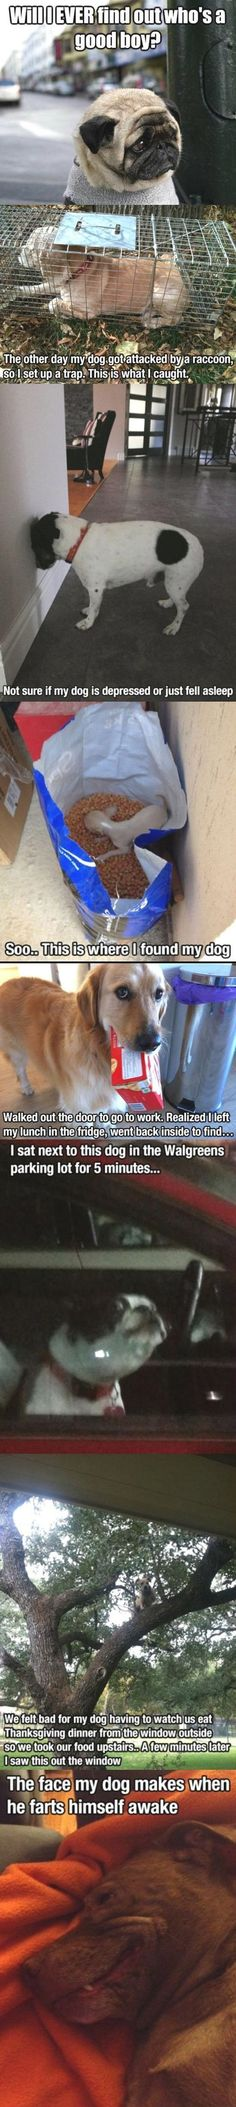 If your dog does the head-press thing, it could mean brain cancer. But otherwise these are funny :)